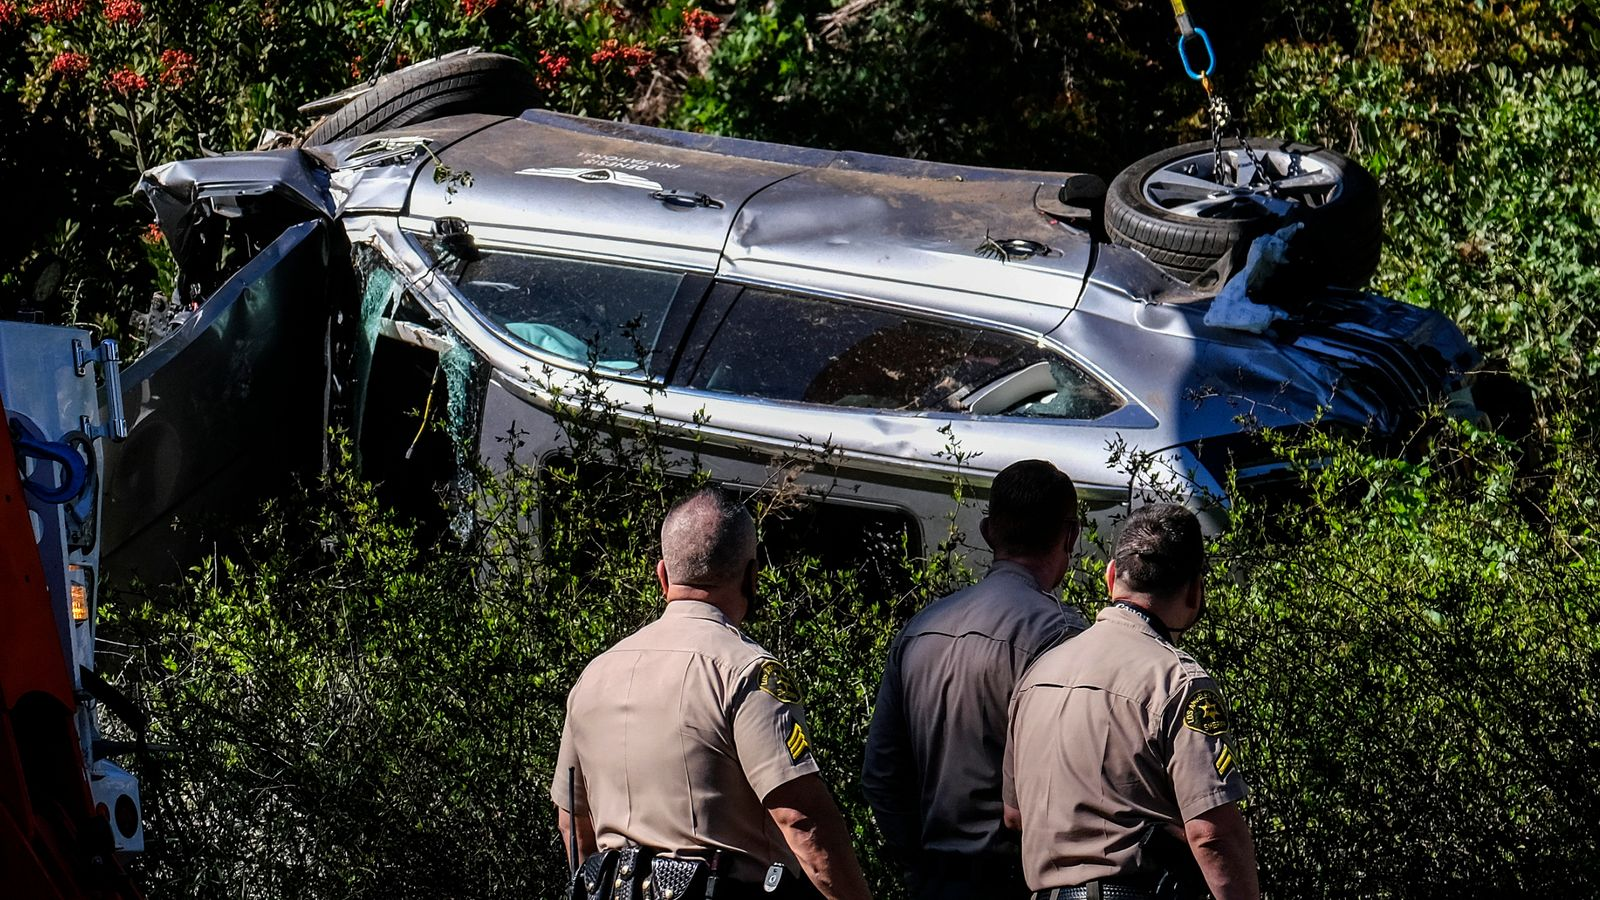 Tiger Woods car crash: Woods not expected to face any criminal charges, says LA Sheriff | Golf ...